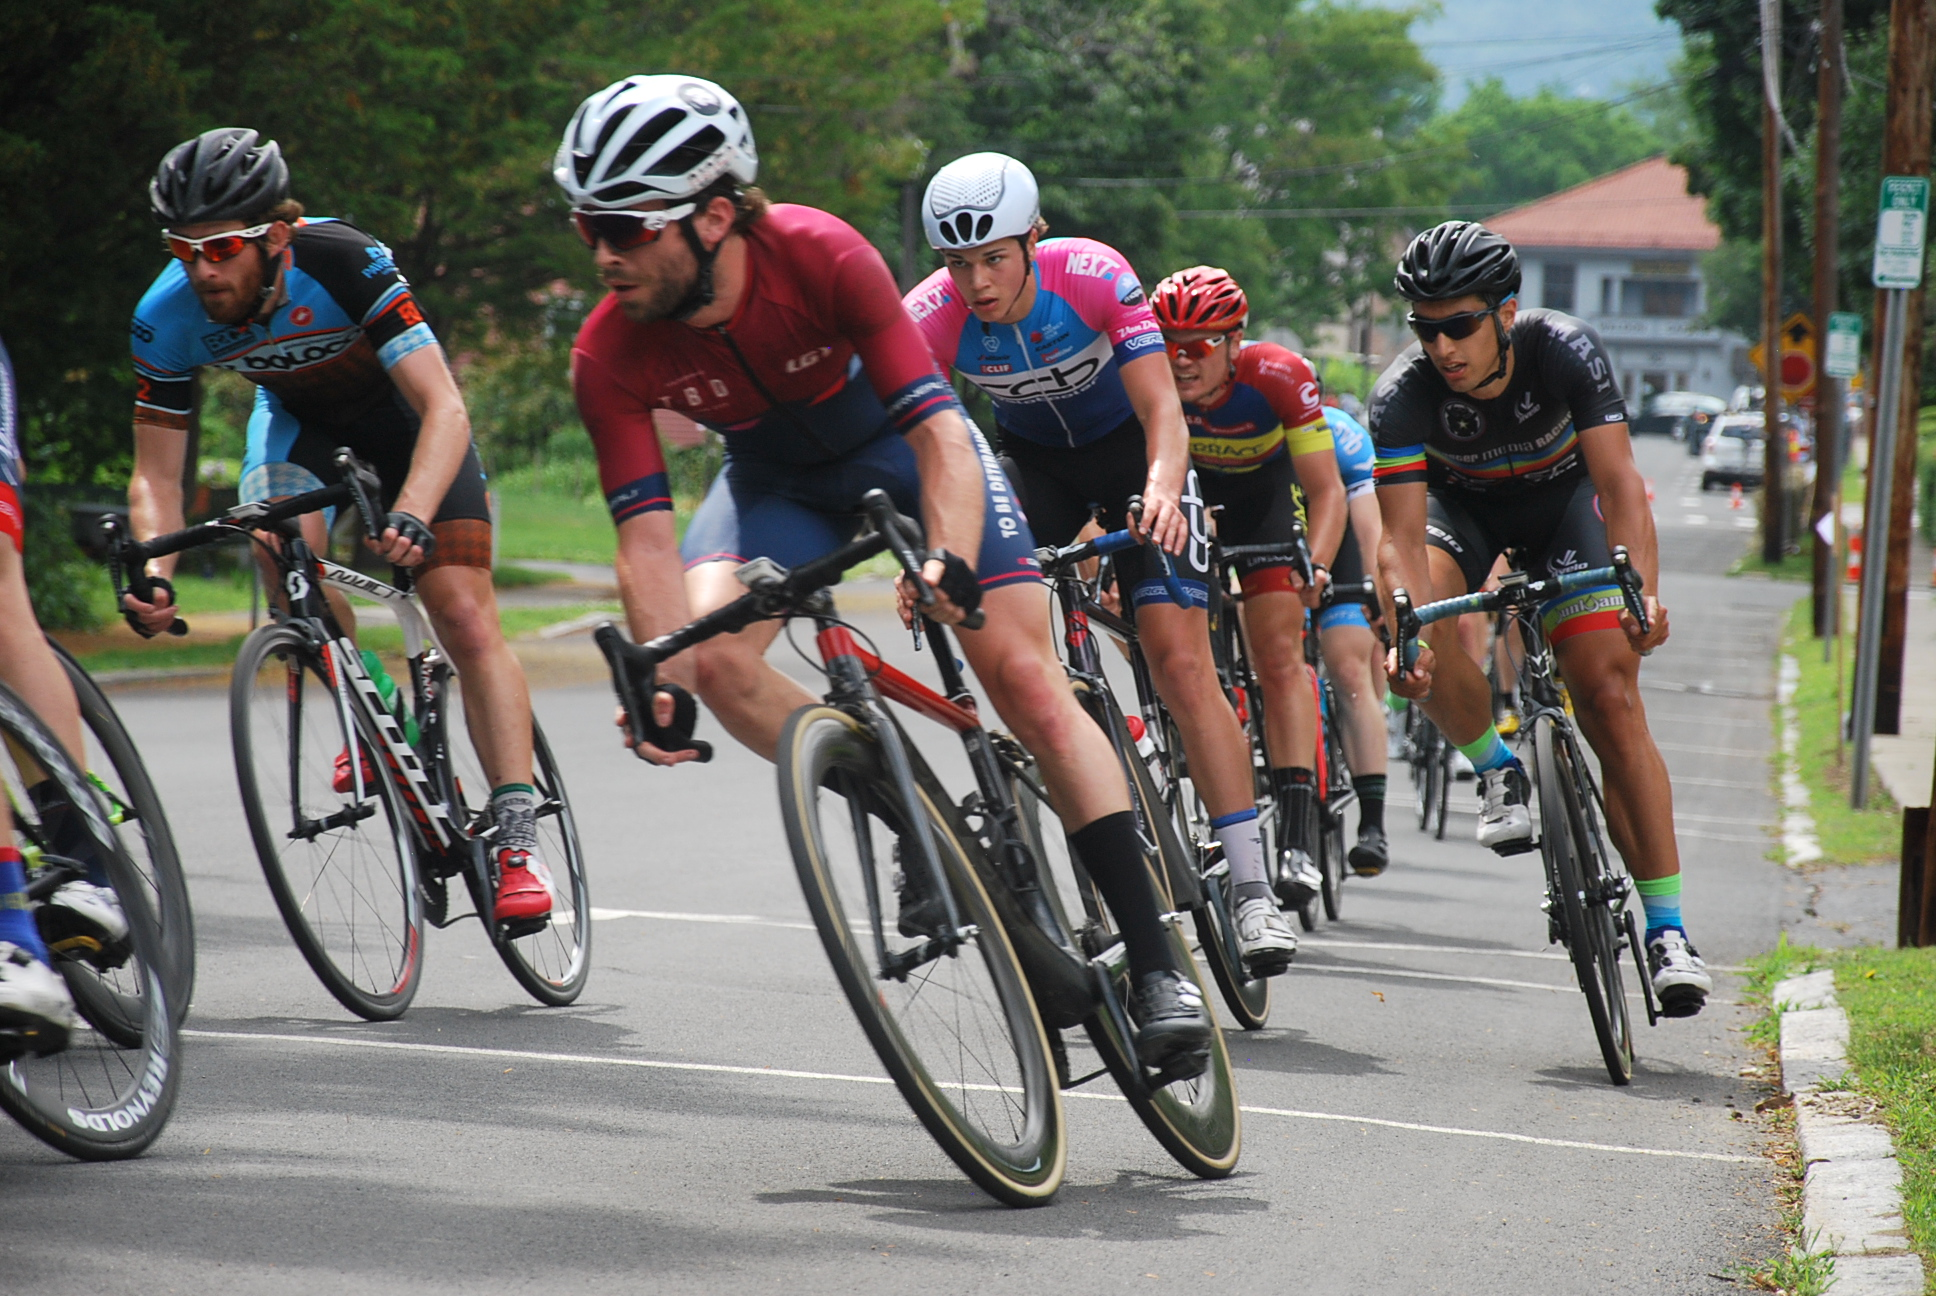 """""""Our bodies drained of water and covered in mosquito bites, we repacked the car, and headed back to our concrete jungle, heads full of good memories.""""   Read the whole story of two NYC riders' adventure to race the Greenfield Crit"""